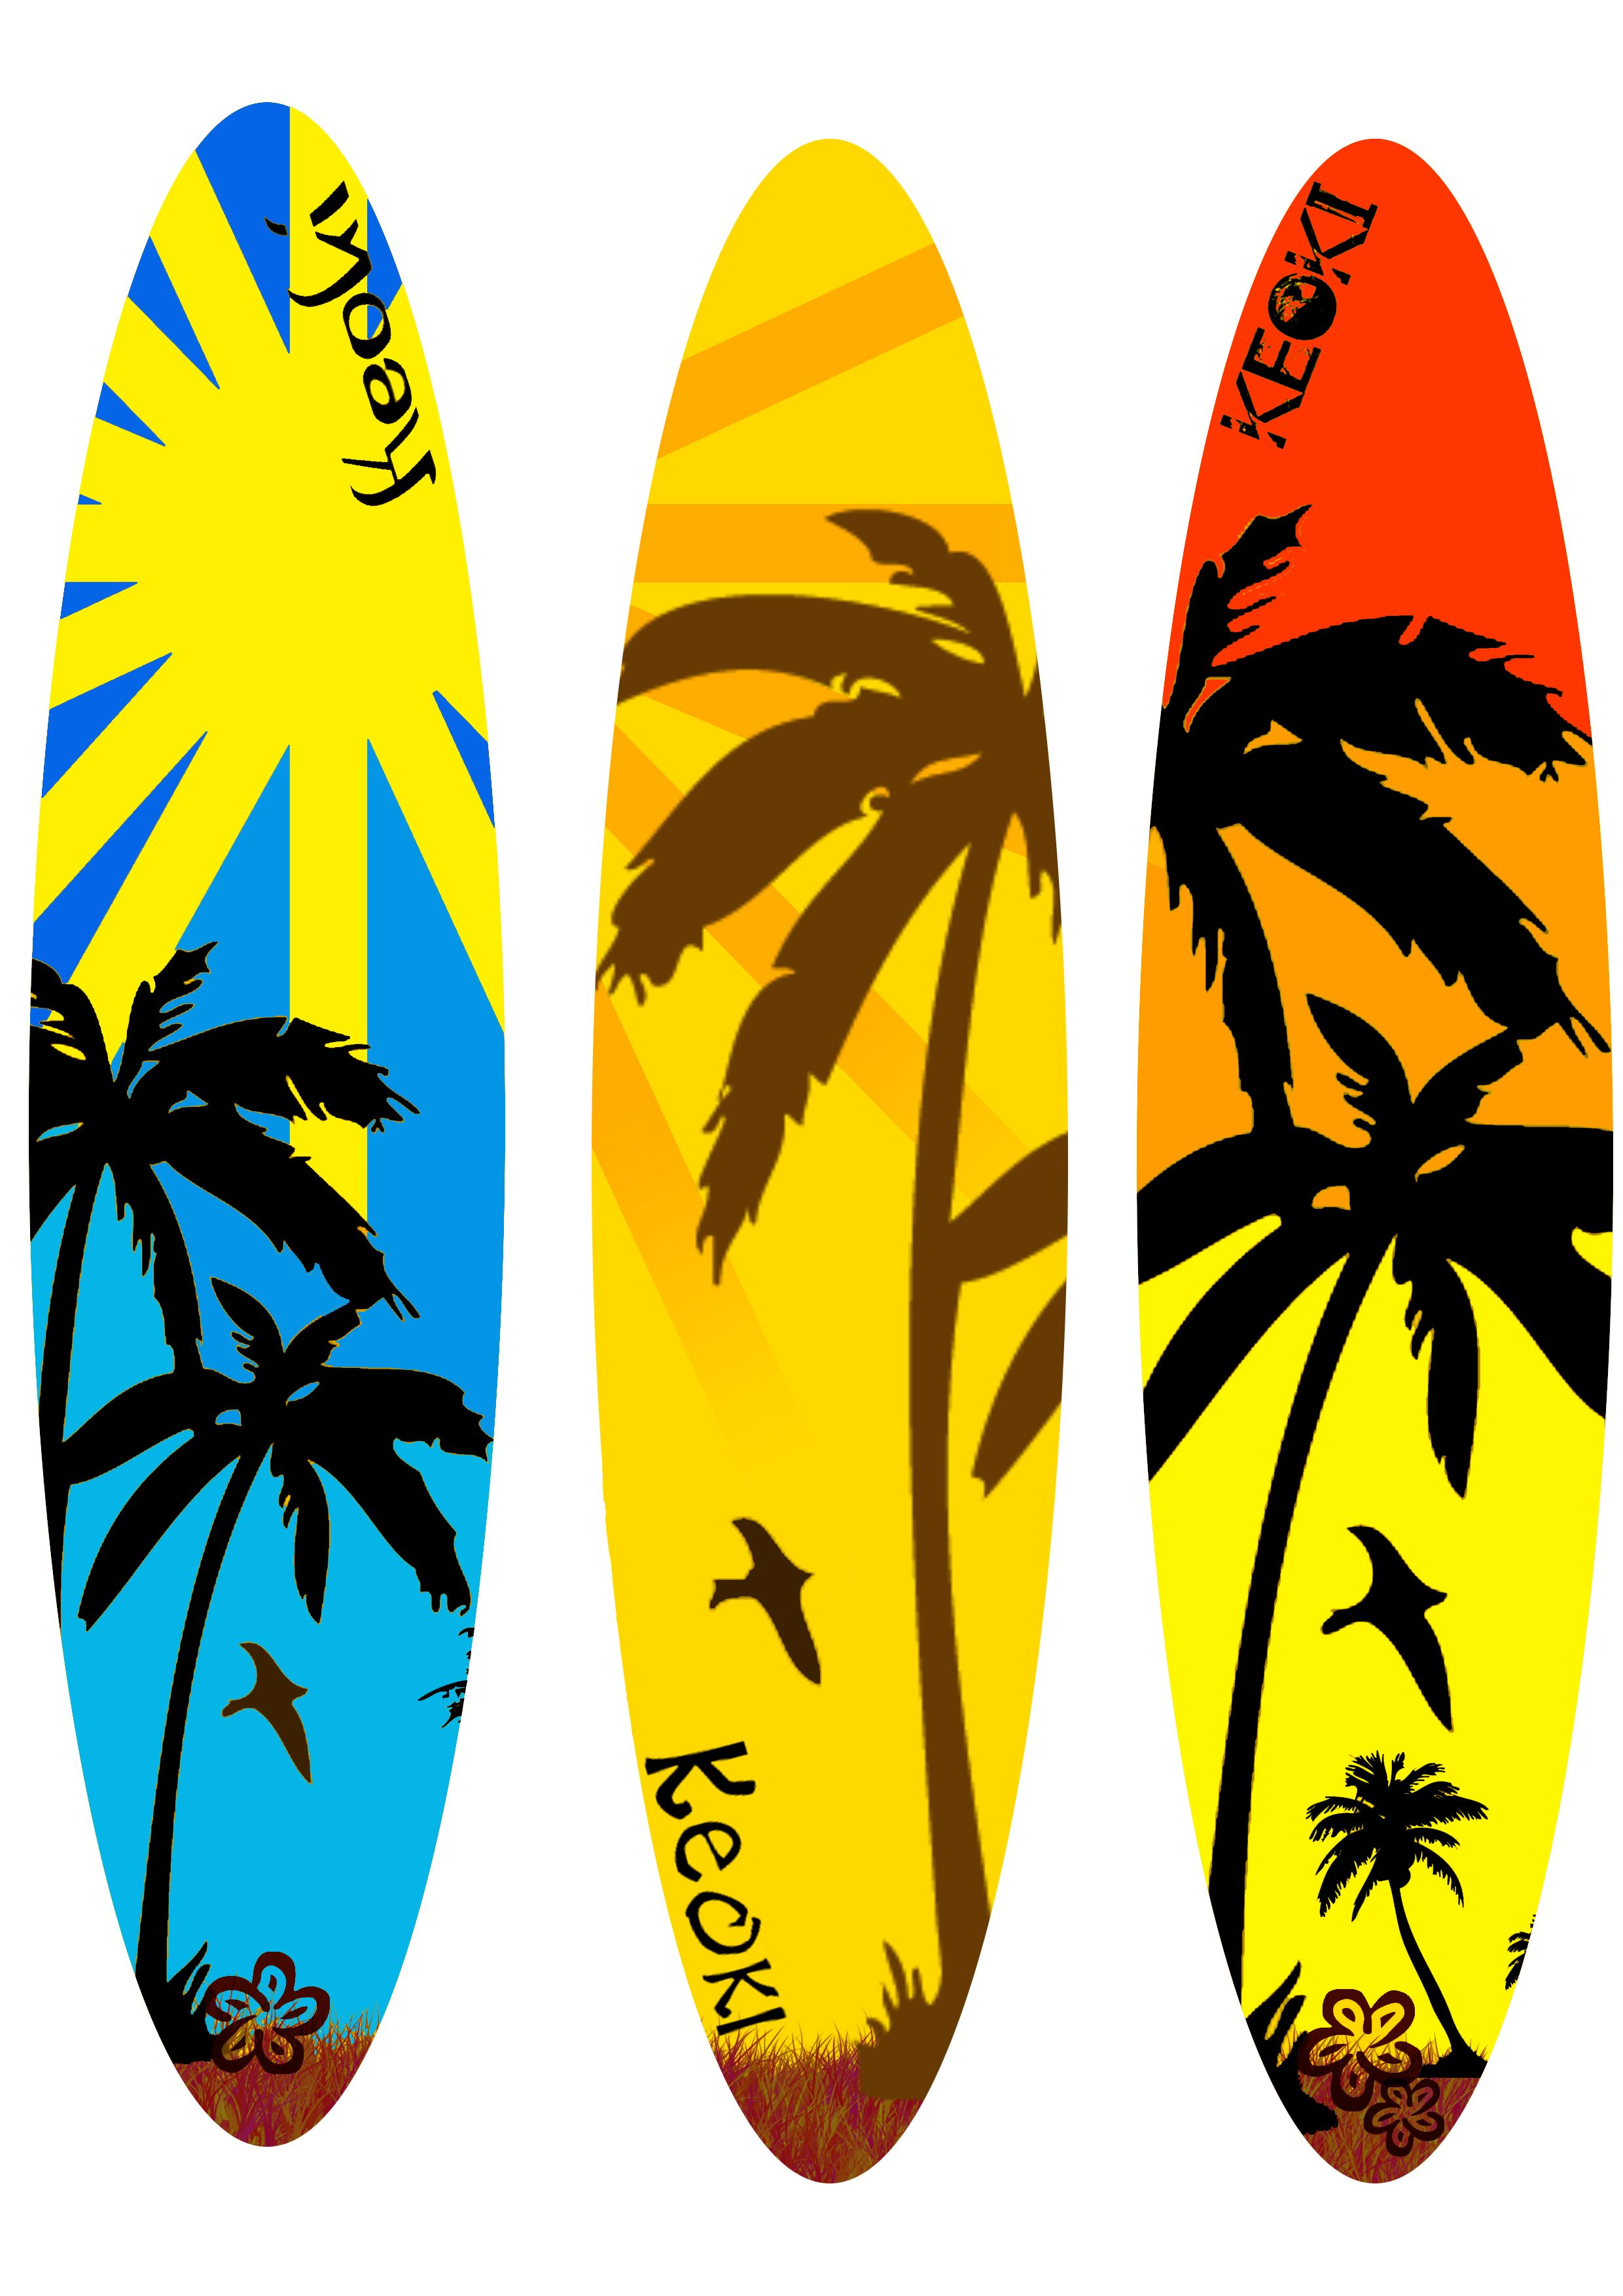 Final Surfboard Design Ideas On These Variants I Have Used